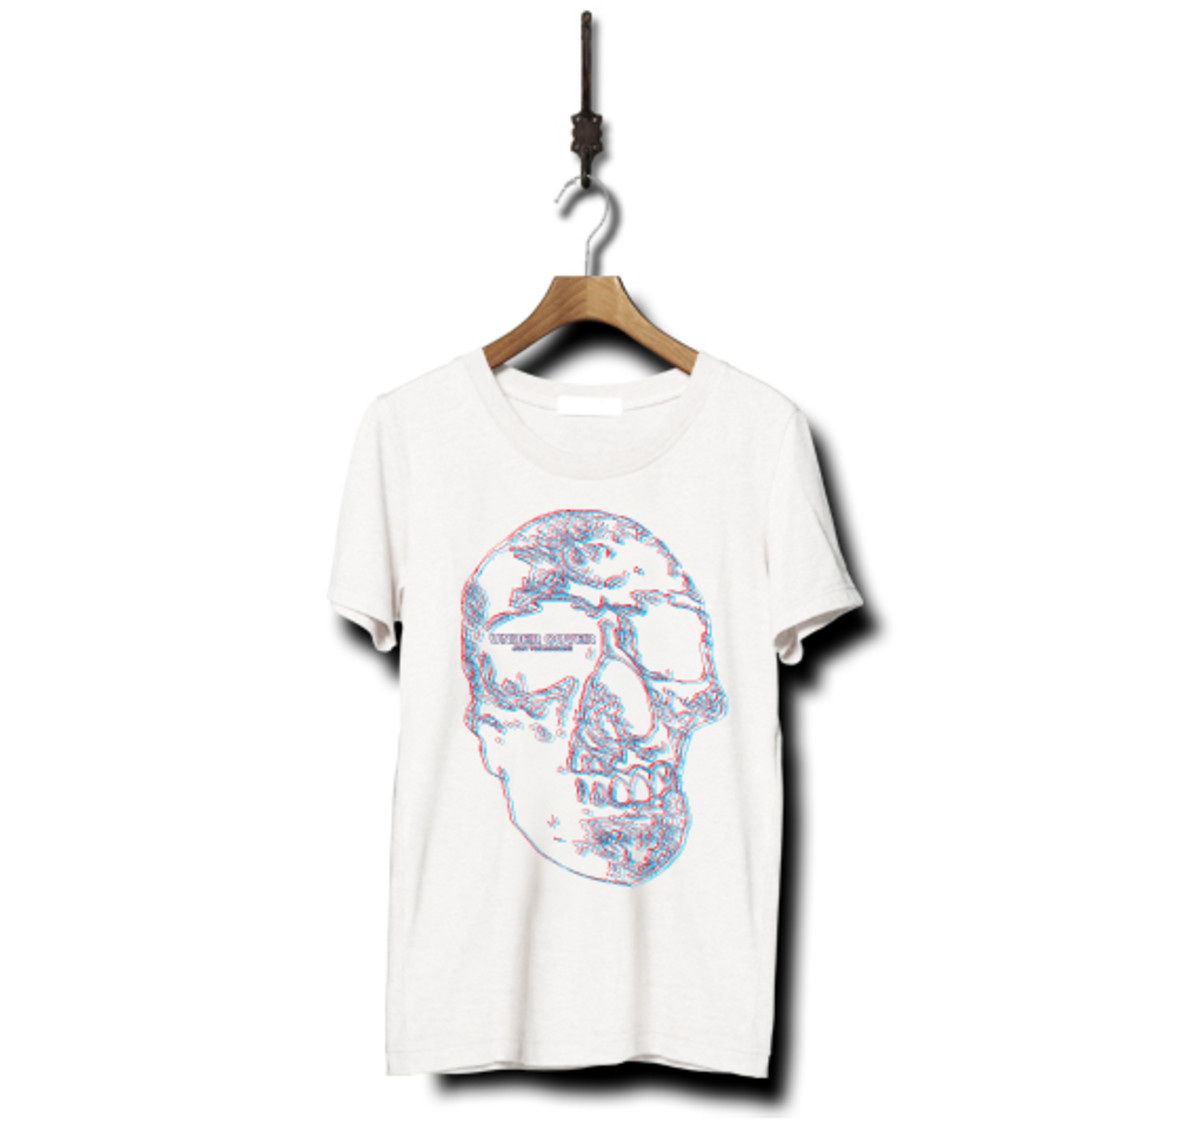 undercover-revival-tee-project-02